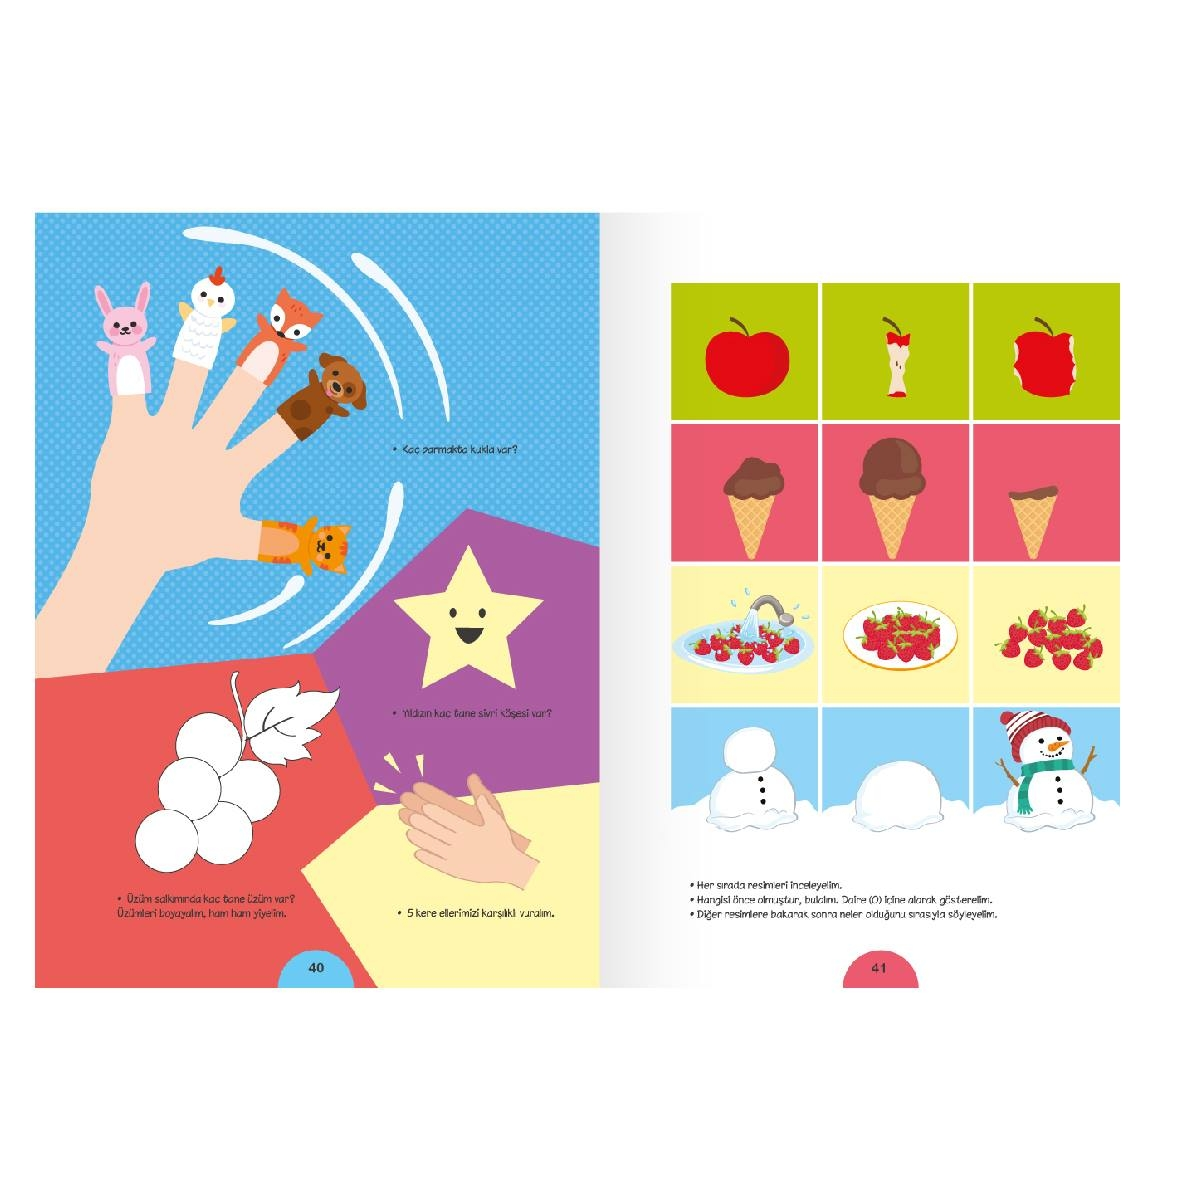 Activities with Concepts for 3+ Age Group